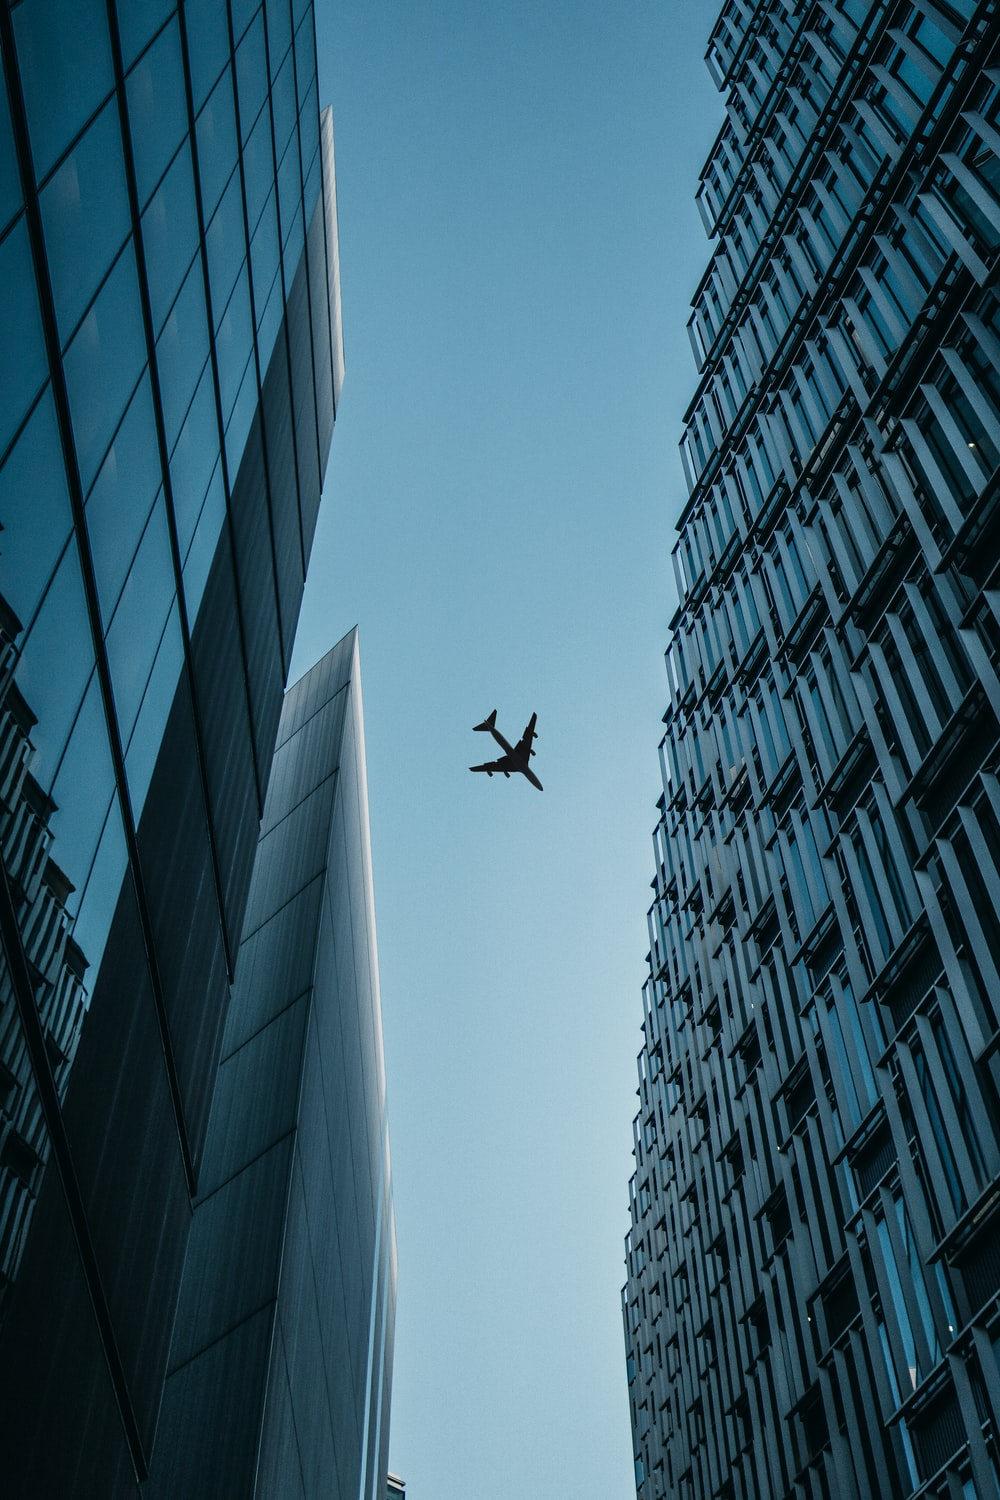 flying airplane above high-rise airplanes